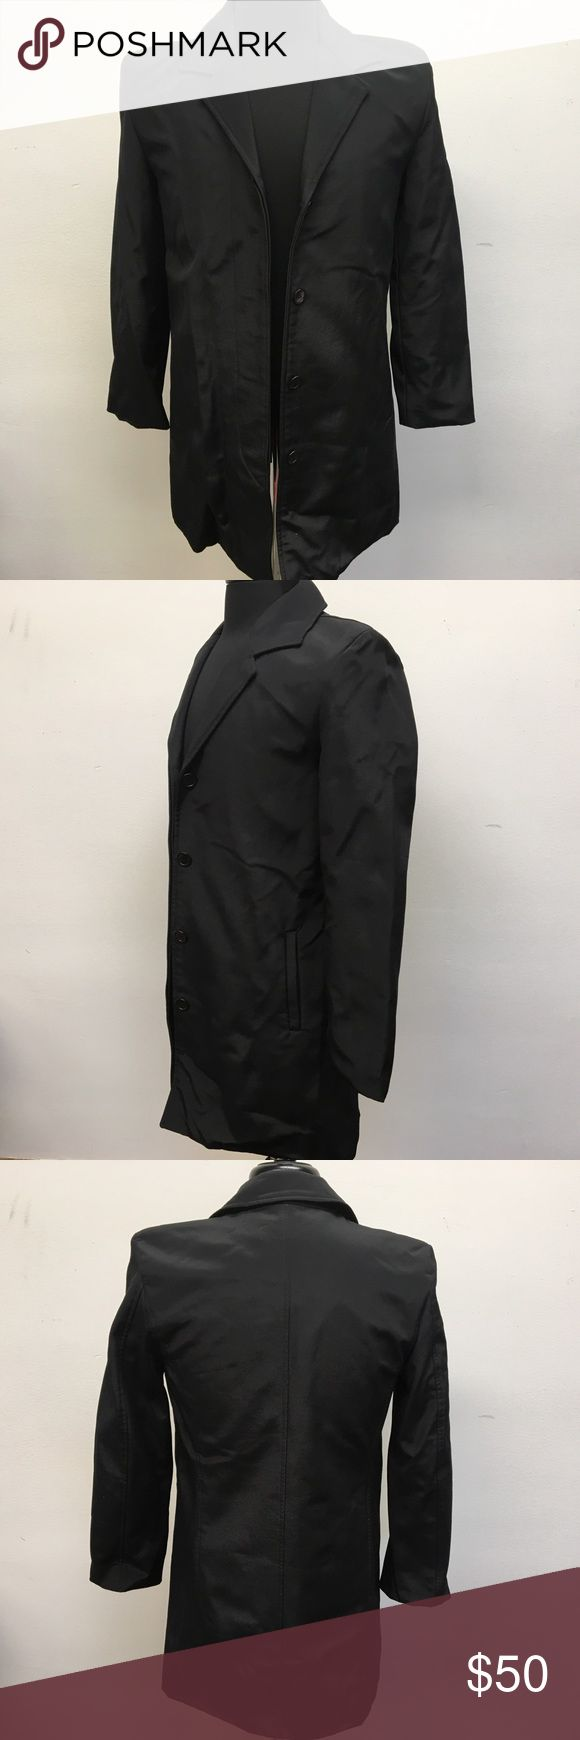 Andrew Marc Black Rain Coat Jacket Andrew Marc button front rain coat. Black in color. Size XS. Excellent Used Condition with no flaws. Andrew Marc Jackets & Coats